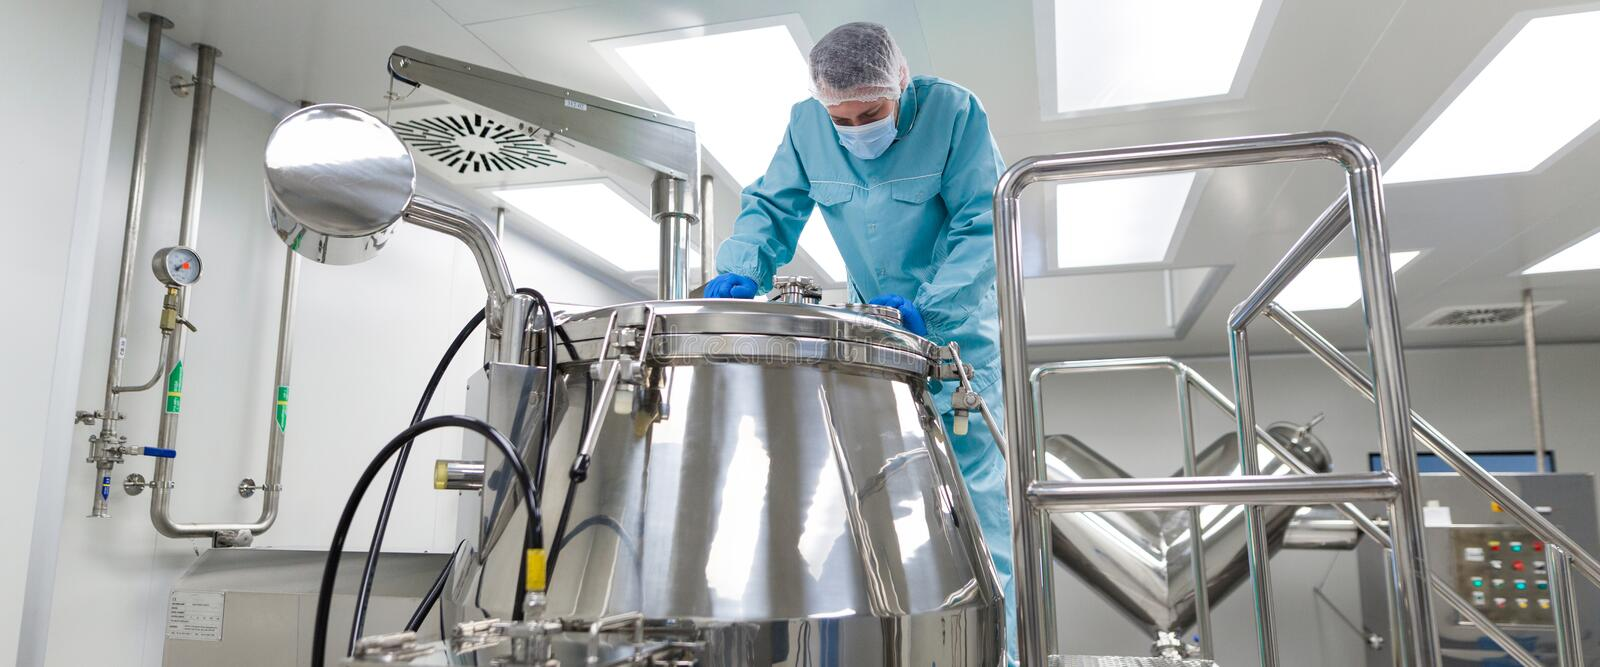 Scientist look in steel tank in laboratory. Widescreen picture, caucasian scientist in blue lab suit and gloves stand on platform and look in the steel barrel royalty free stock photography